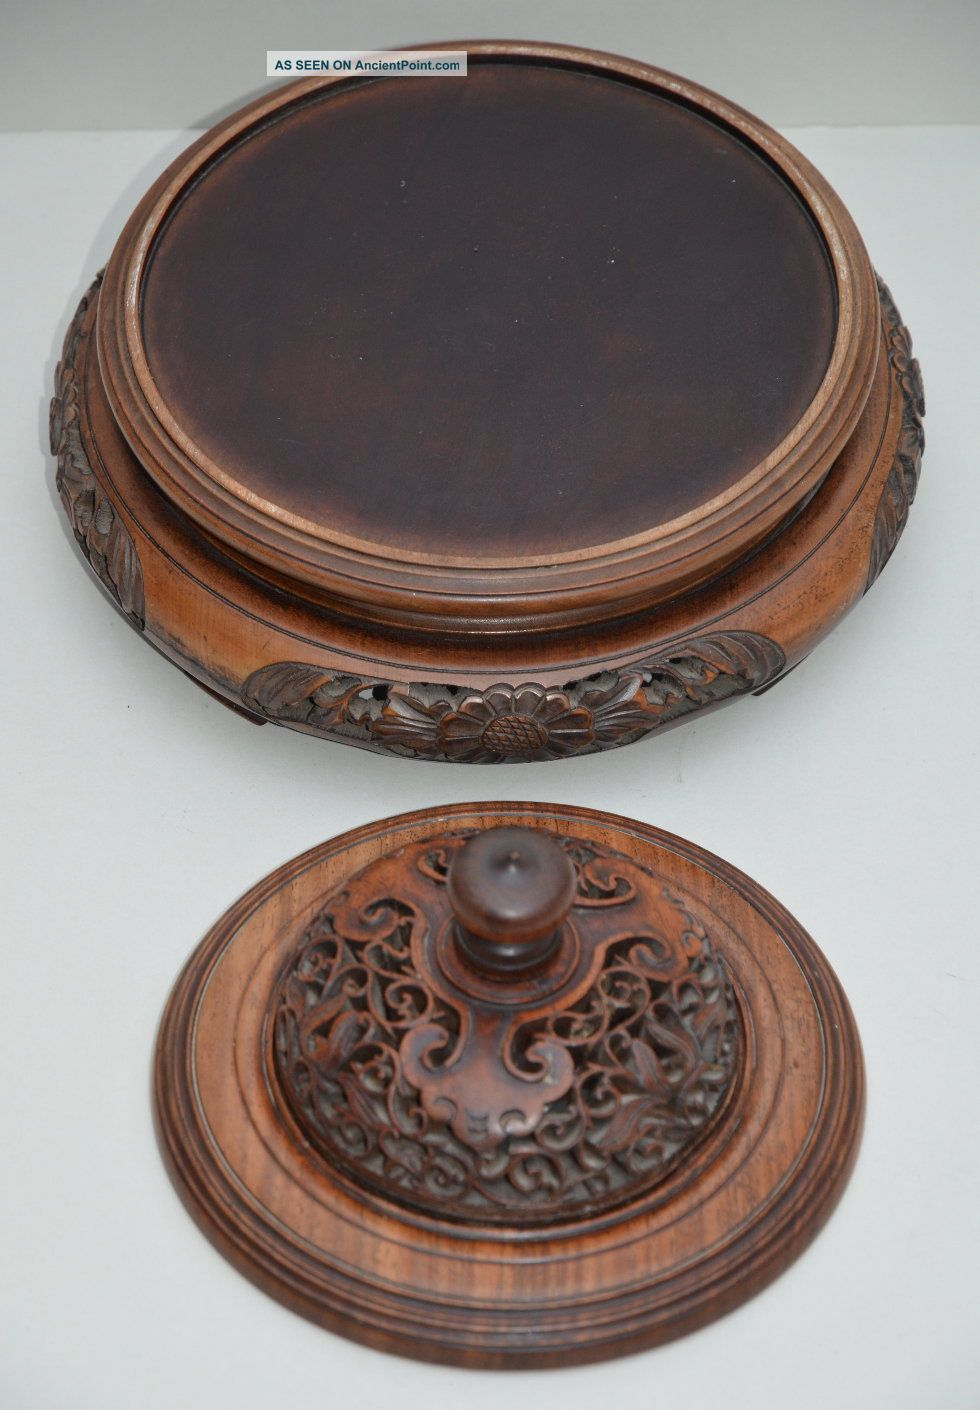 Fine Large C19 Chinese Qing Dynasty Huanghuali Wood Stand & Lid,  Circa 1880 Vases photo